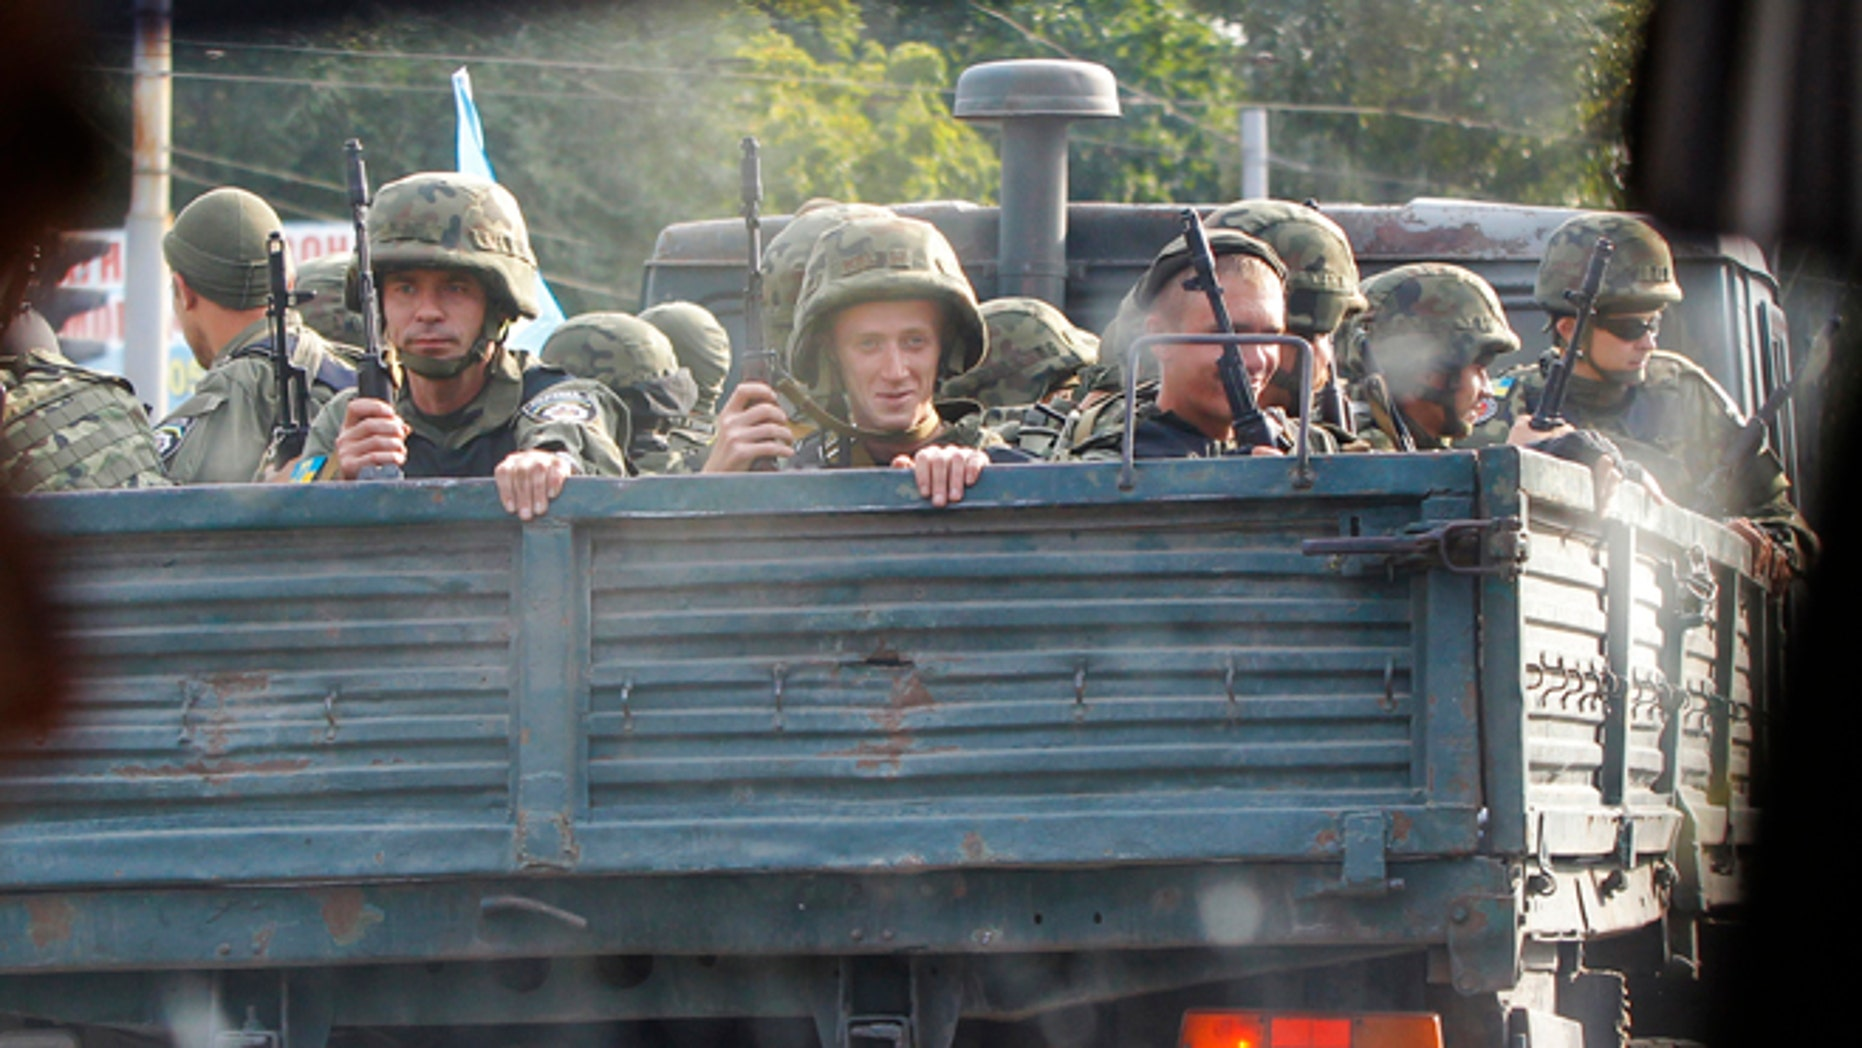 Ukrainian soldiers drive on a truck in the southern coastal town of Mariupol, Ukraine, Monday, Sept. 8, 2014. Poroshenko made a surprise trip Monday to a key city in southeastern Ukraine as a cease-fire between Russian-backed rebels and Ukrainian troops appeared to be largely holding. (AP Photo/Sergei Grits)